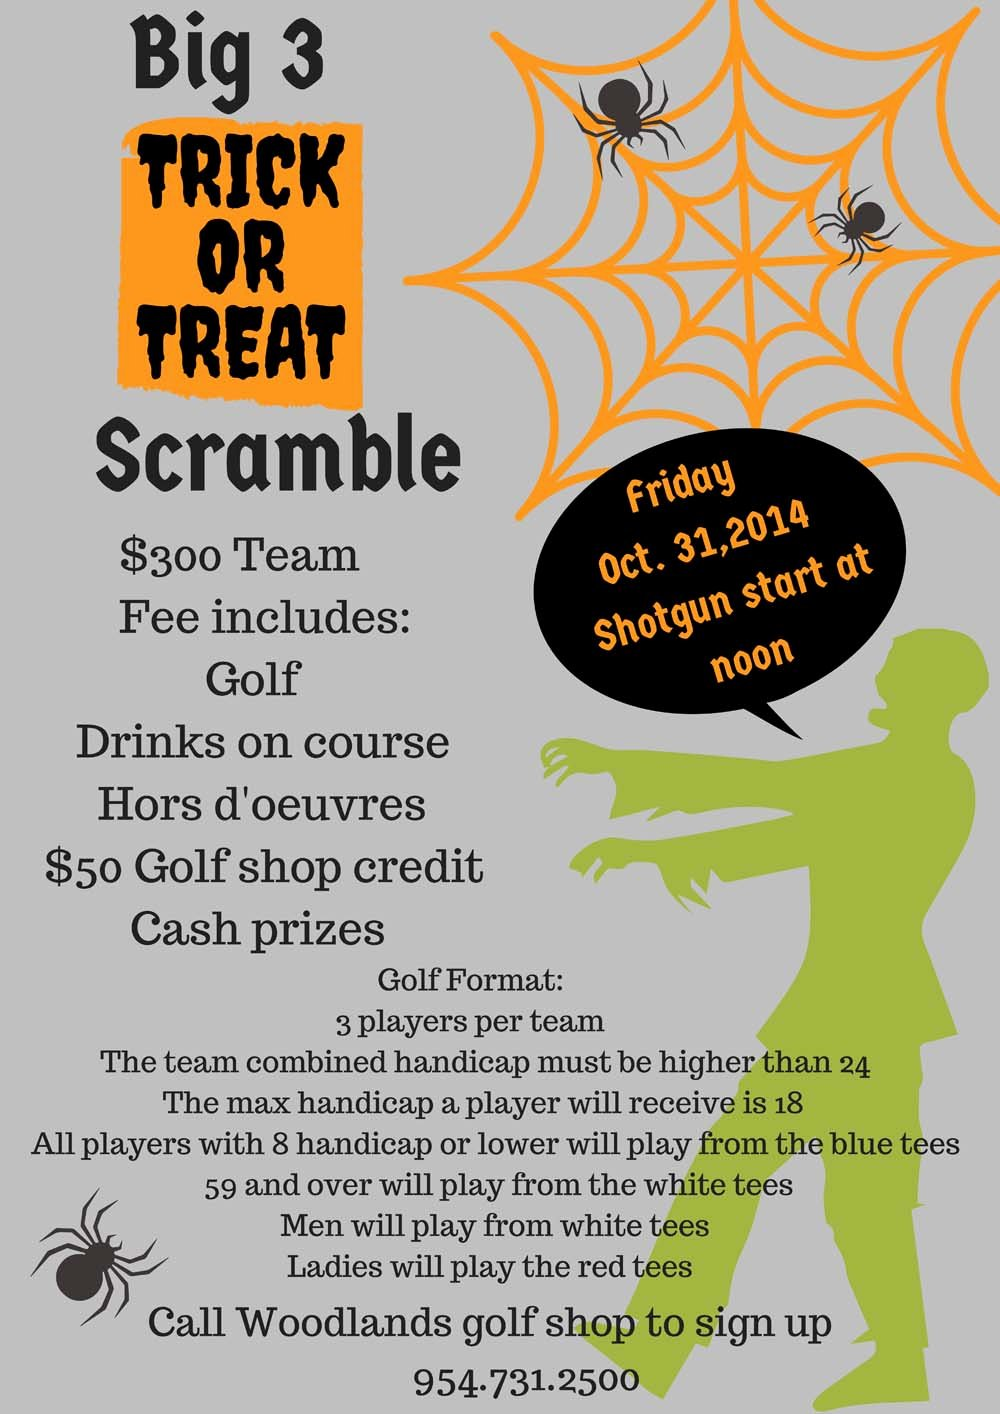 Golf Scramble Flyer Template New Woodlands Residents Invited to Participate In Trick or